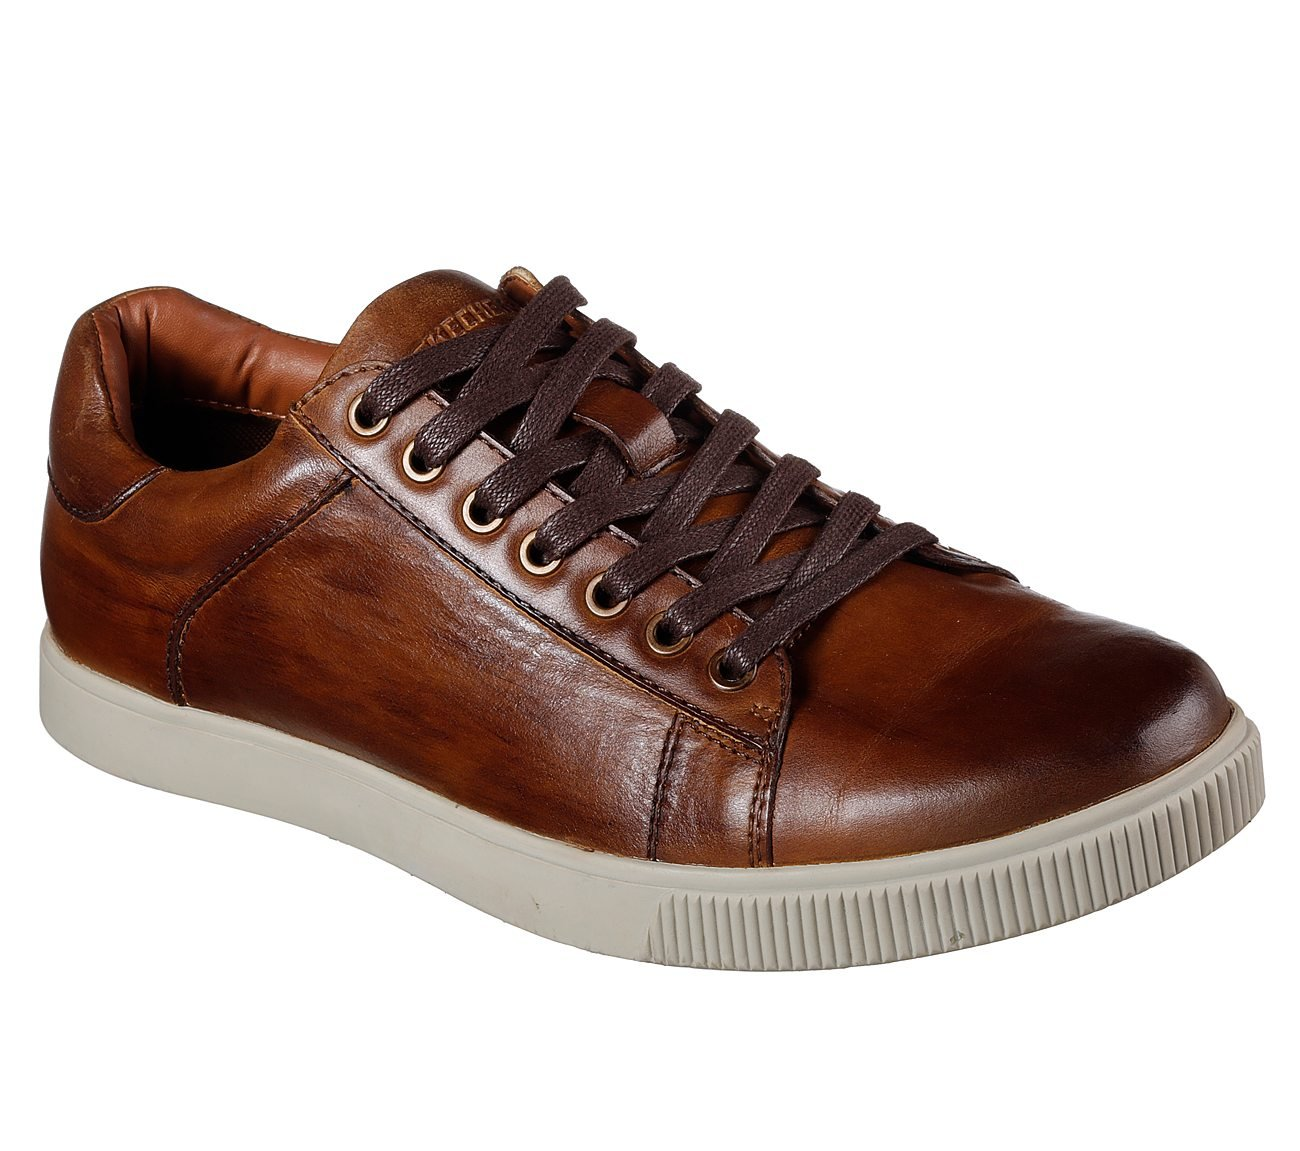 Skechers Men's Lifestyle 65323 Low Profile Leather Lace up, Tan - 12